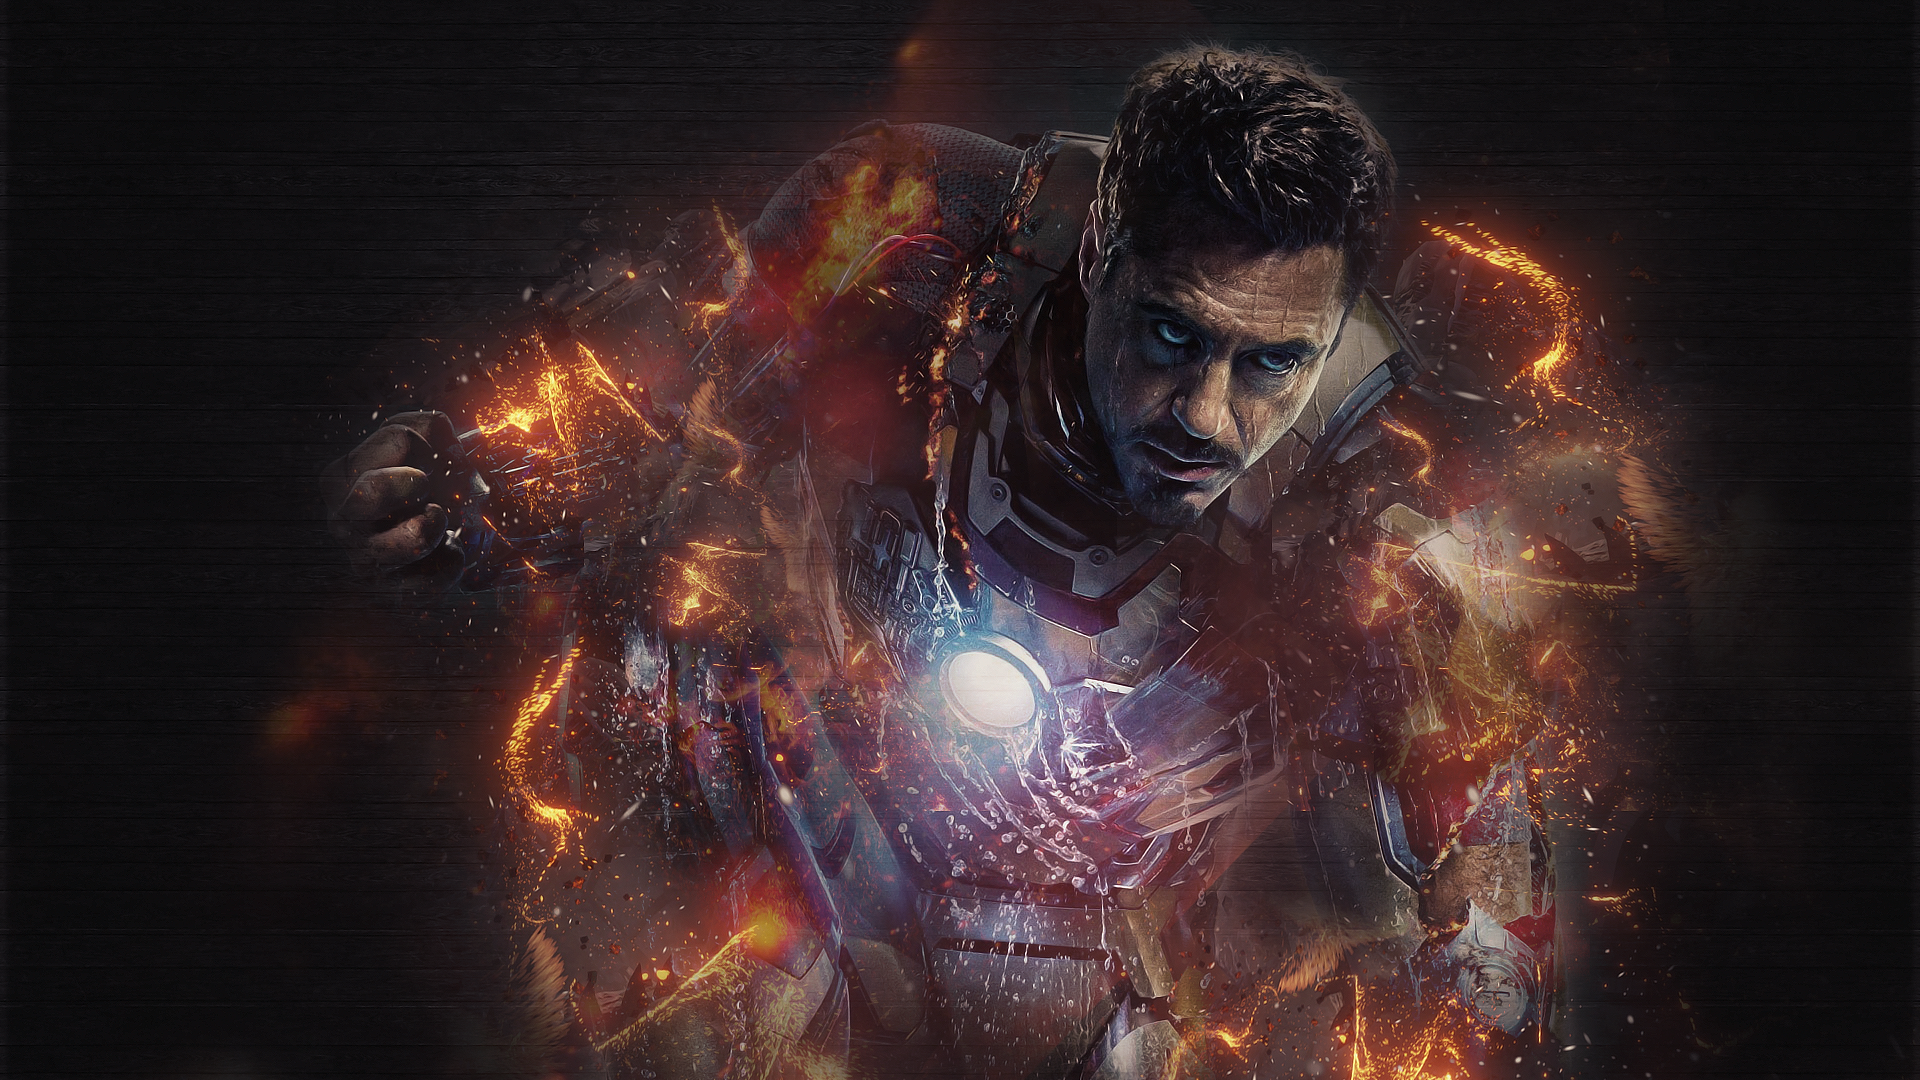 download wallpapers of iron man 2